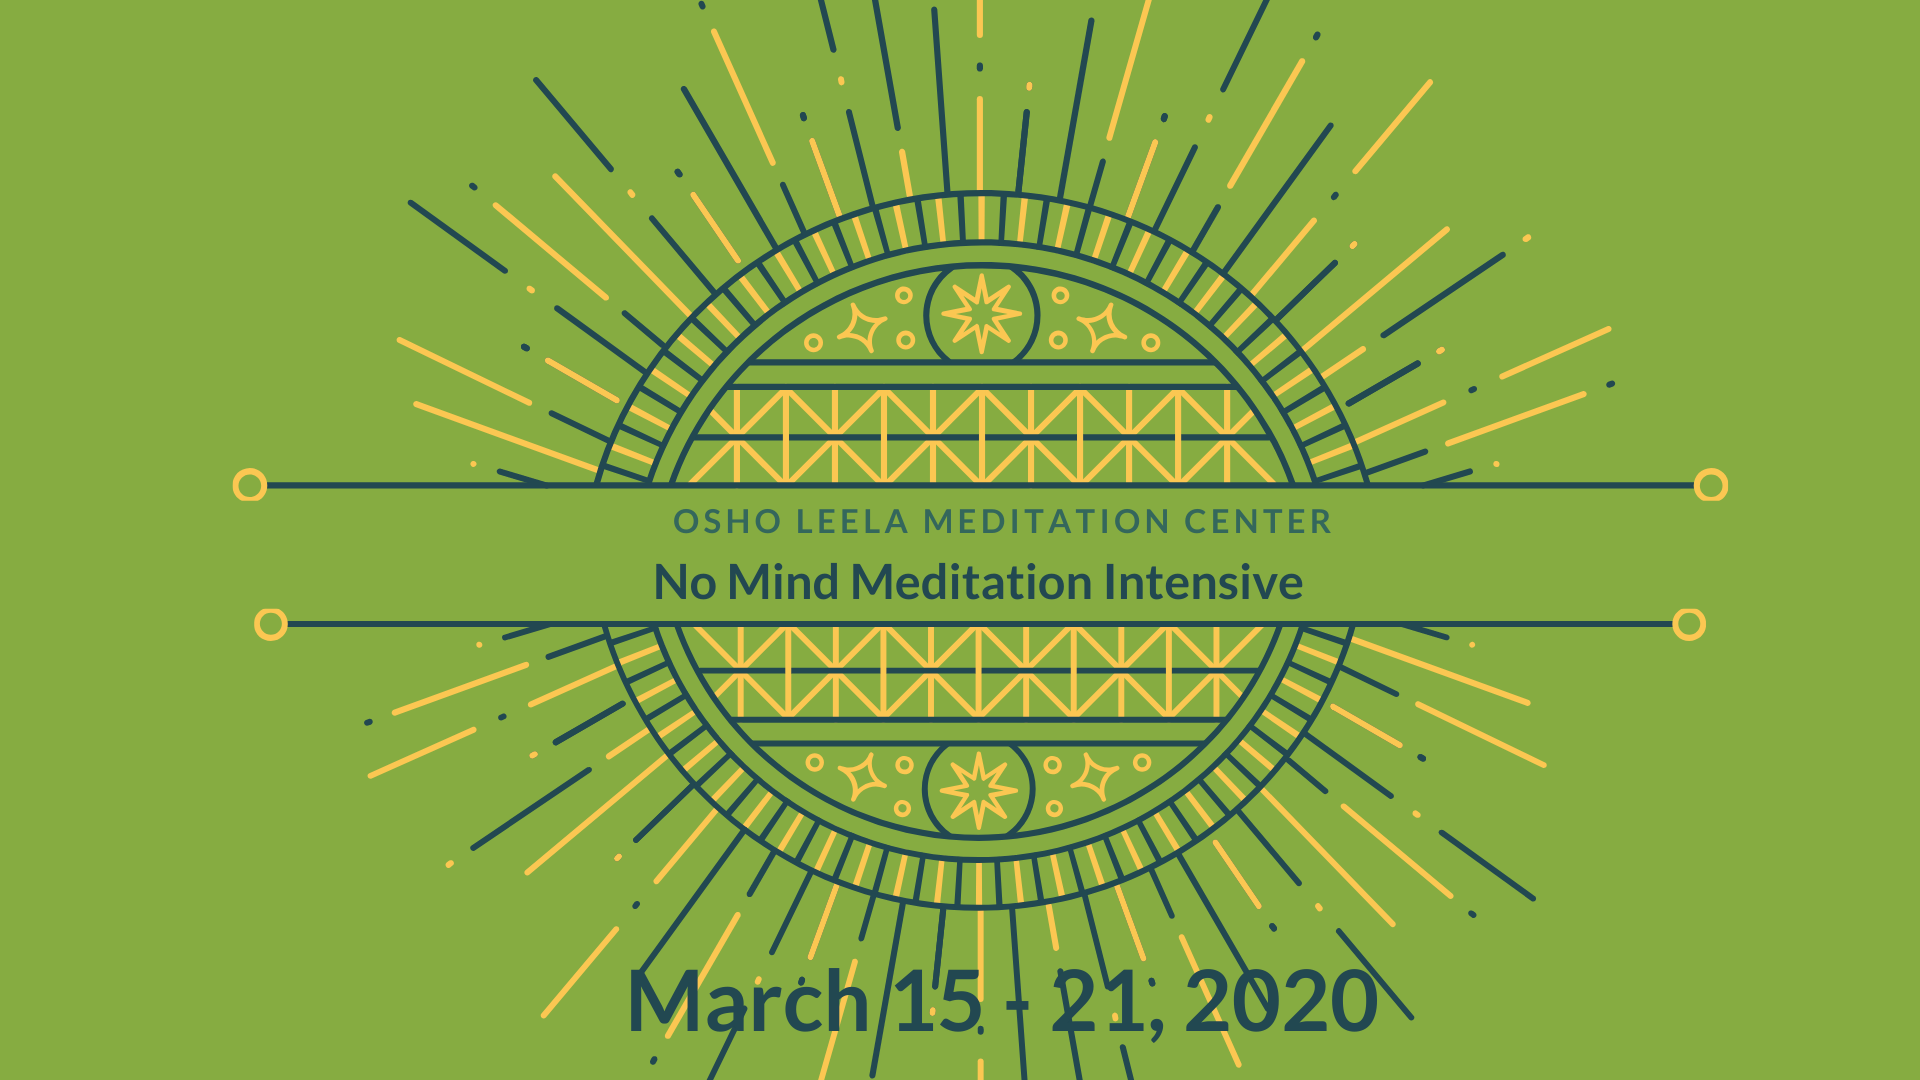 No Mind Meditation Intensive and Enlightenment Day Celebration